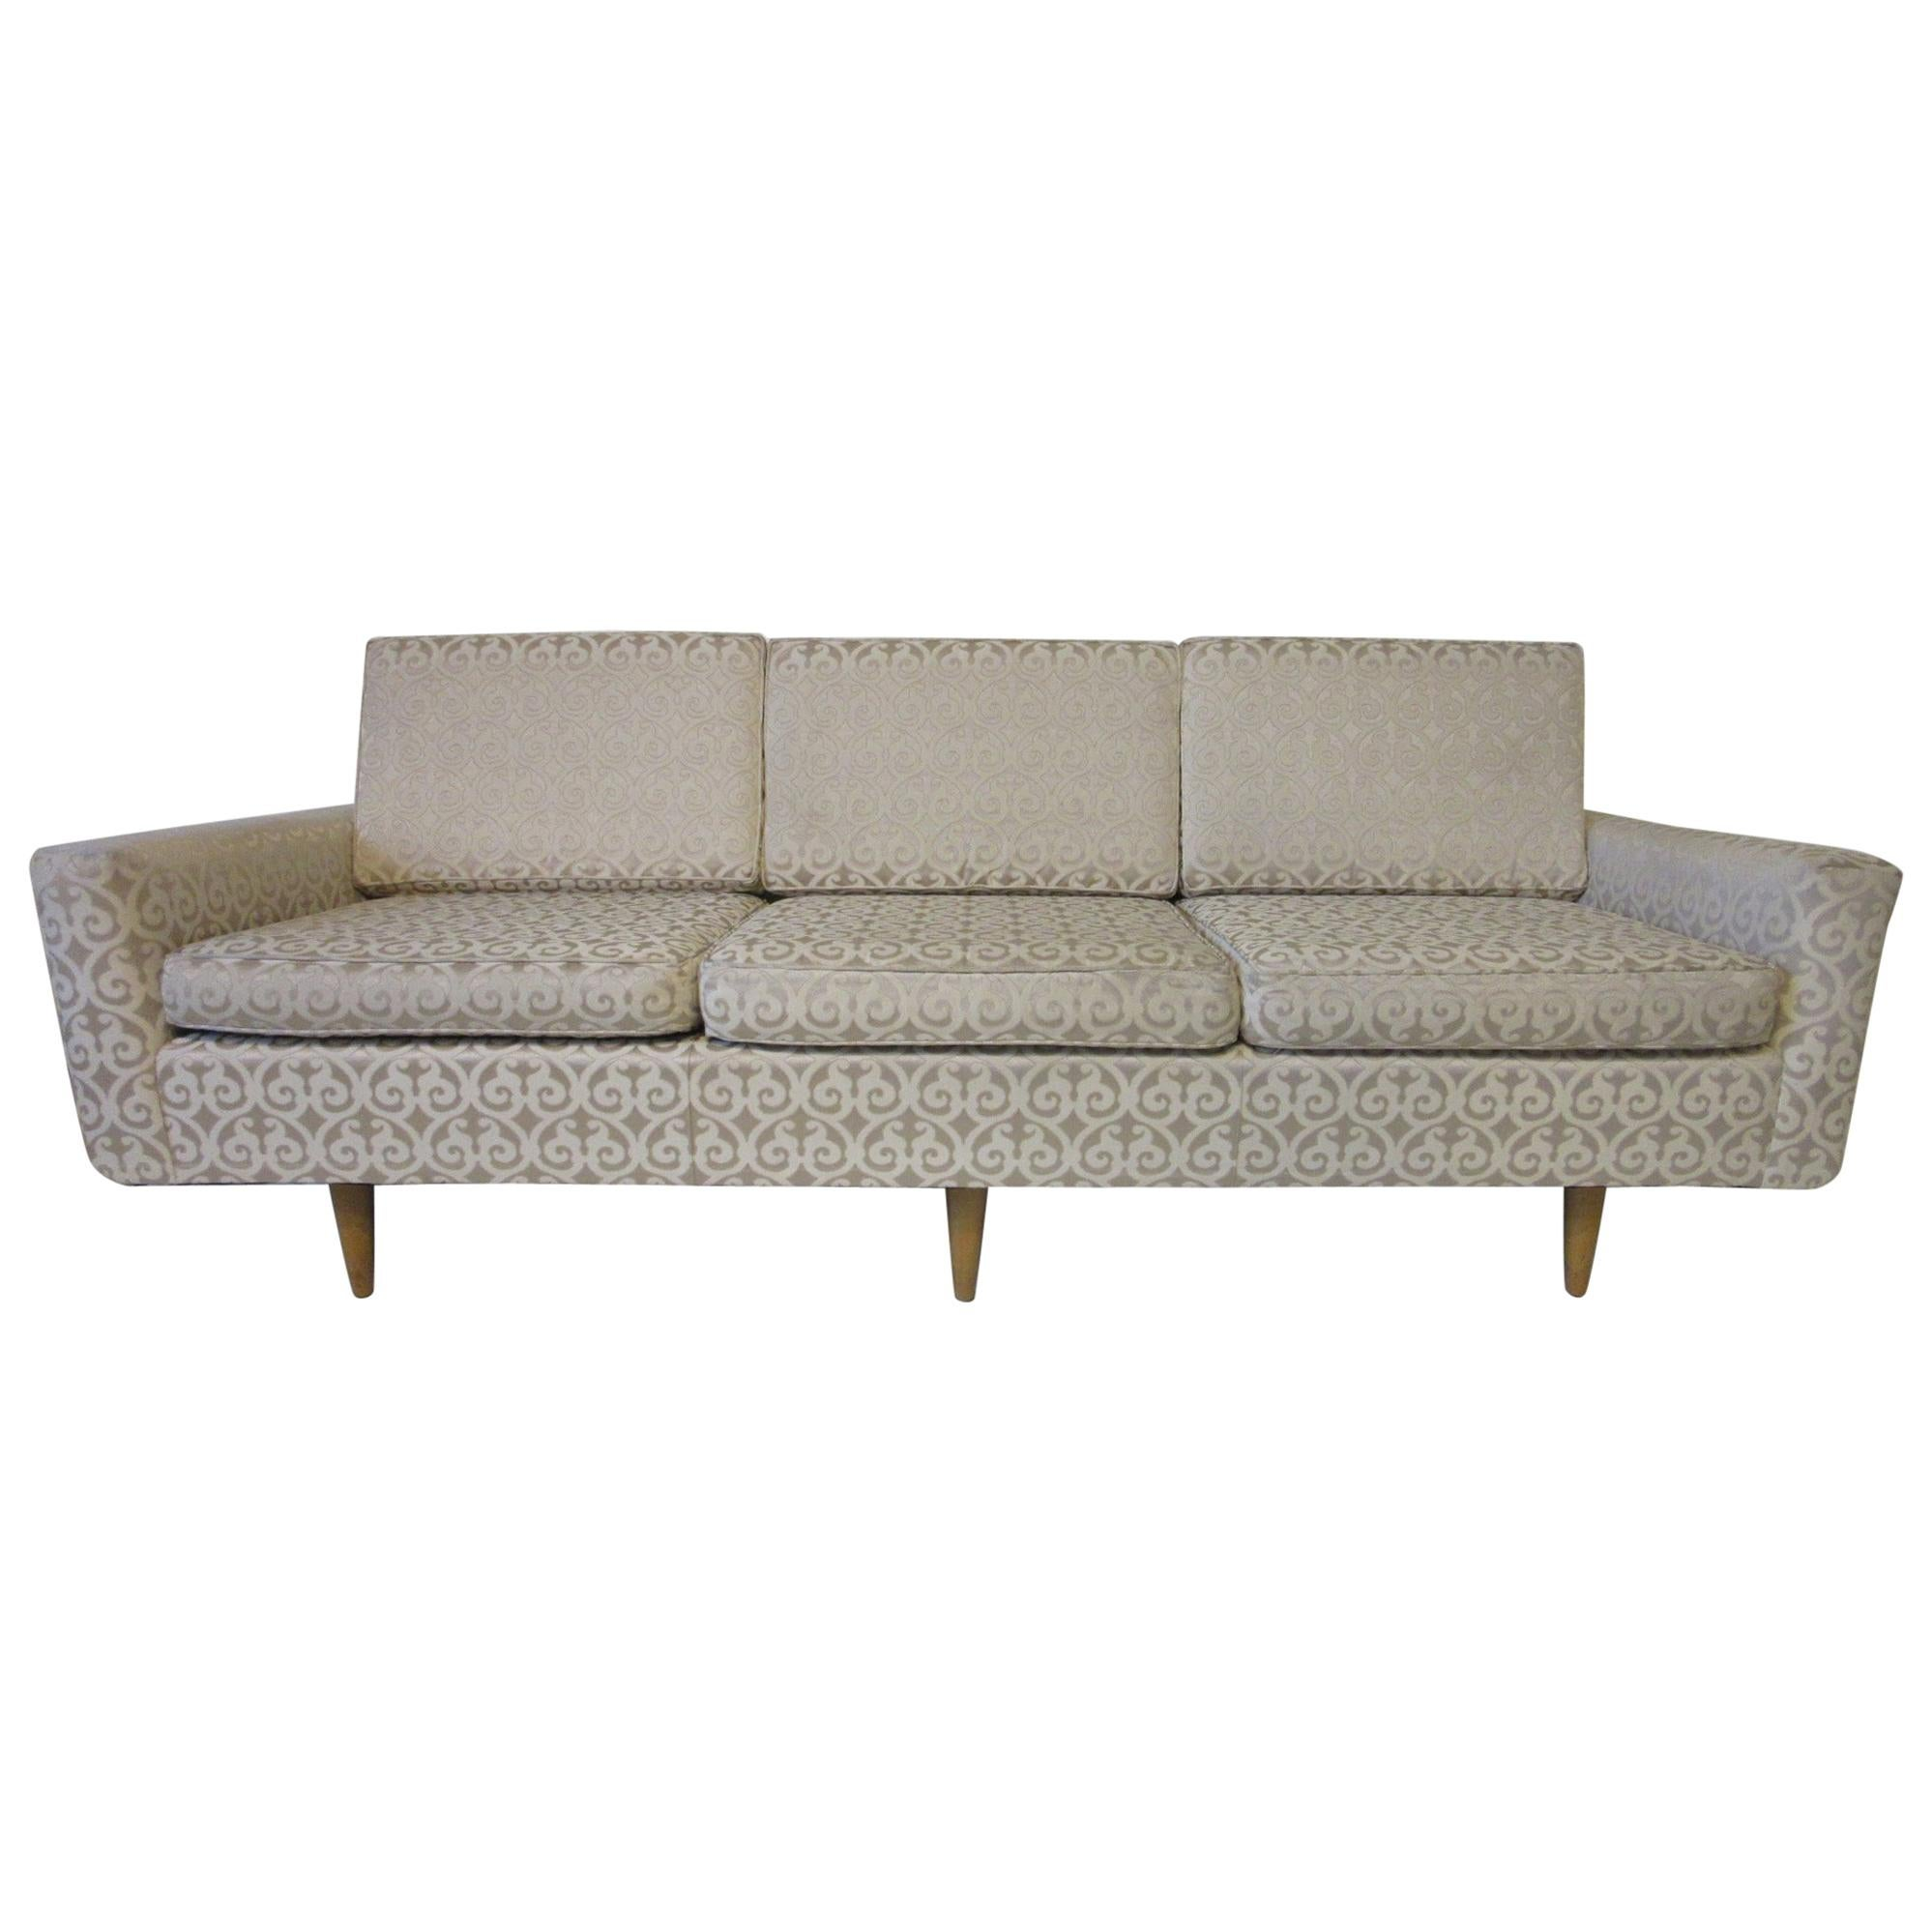 Schlafcouch Vintage Florence Knoll Sofas 64 For Sale At 1stdibs